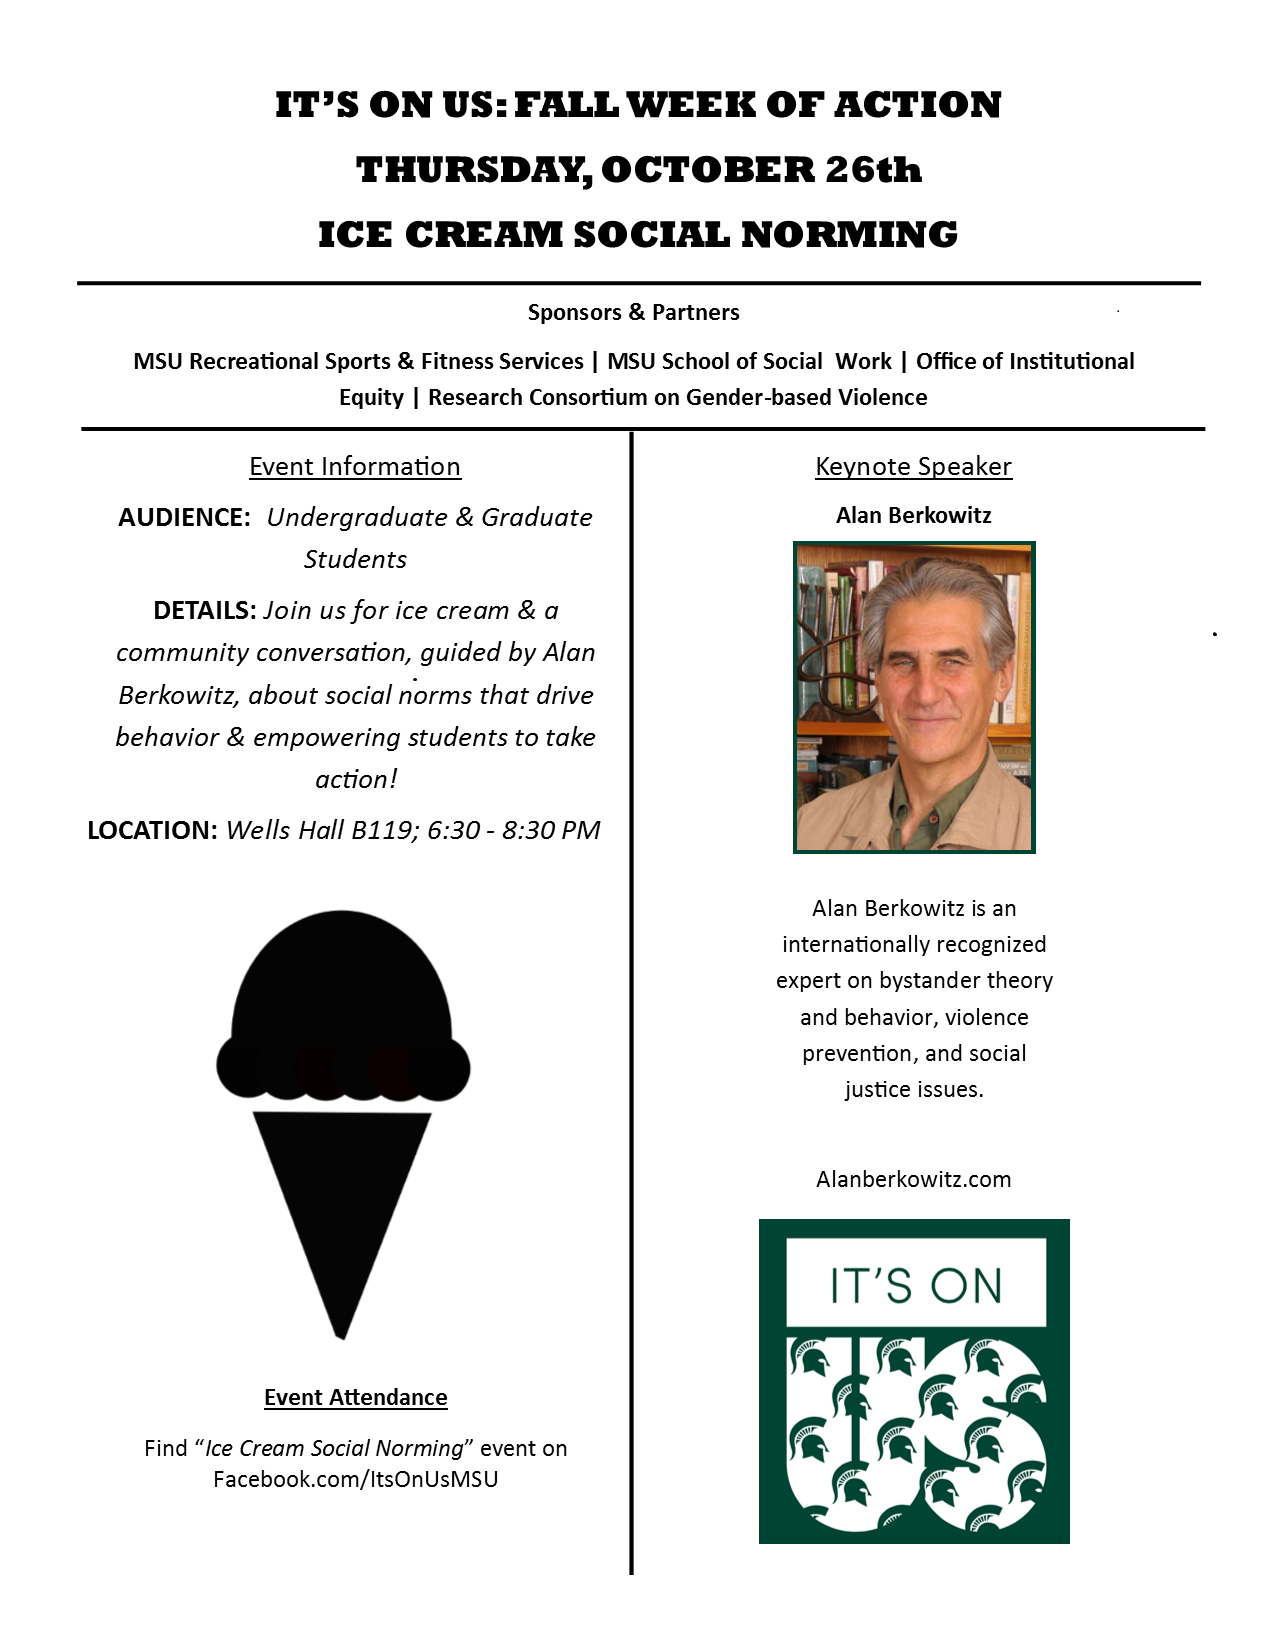 It's On Us Ice Cream Social Norming Flyer